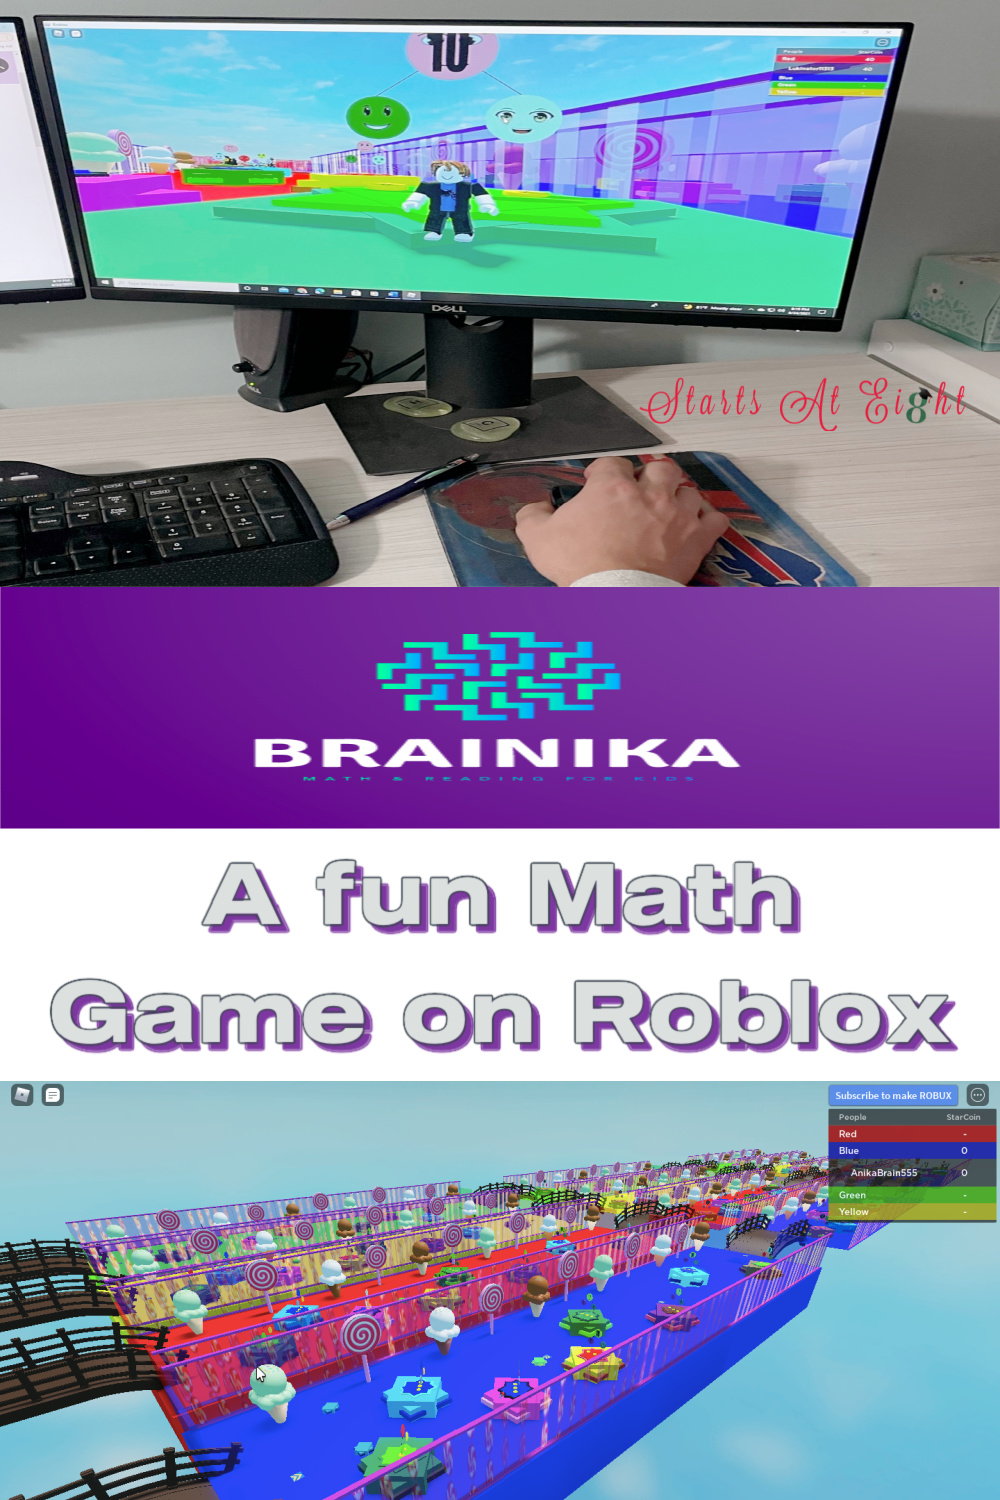 Check out this fun math game on Roblox by BRAINIKA! A fun way for kids in grades K-2 to practice their math skills! Turn their game time into learning time! A review from Starts At Eight.